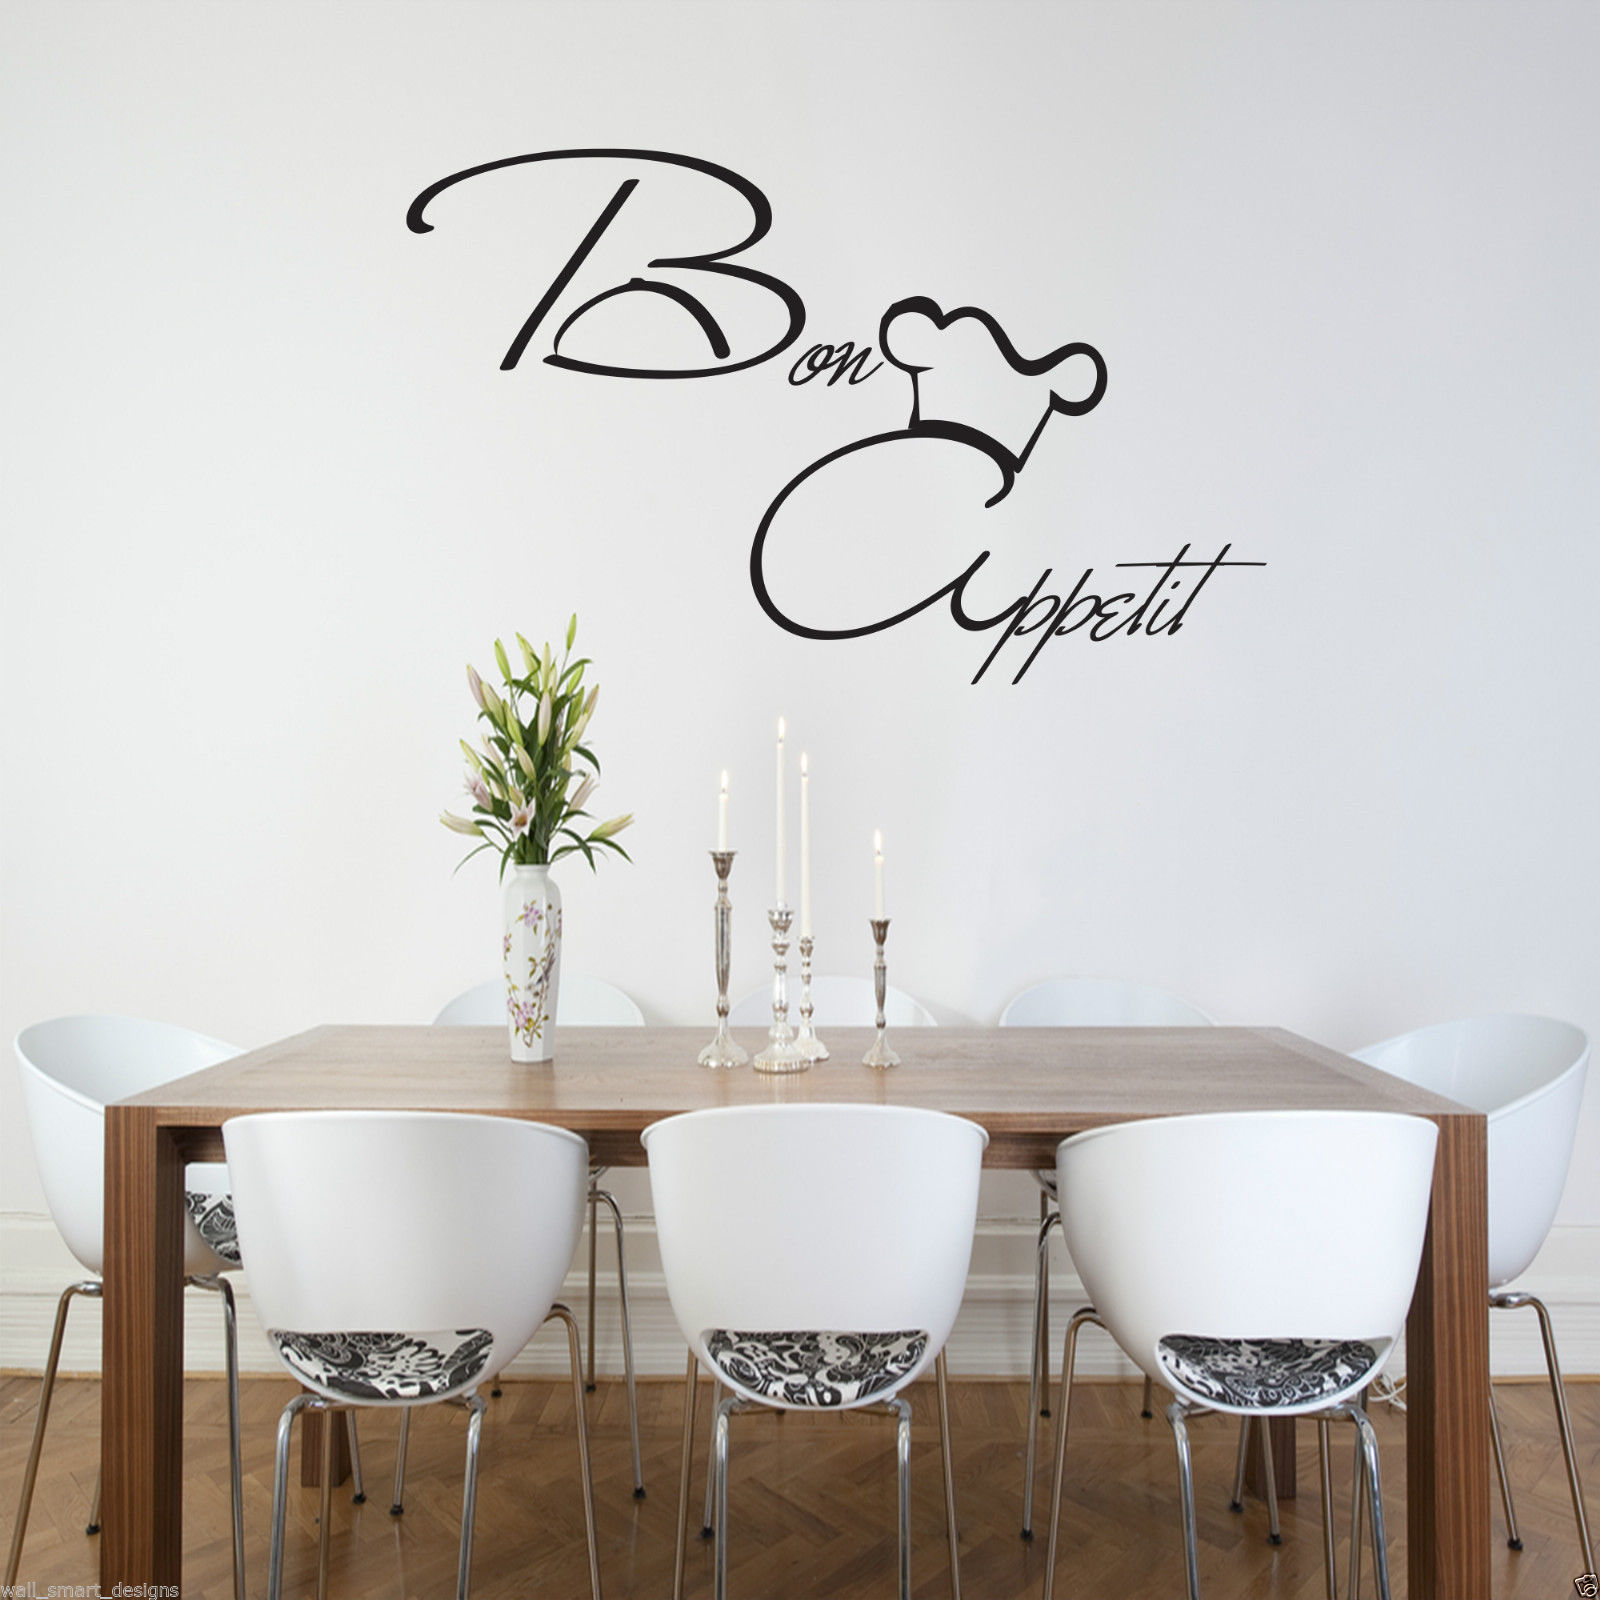 Bon Appetit Wall Art Sticker KItchen Vinyl Quote Decal